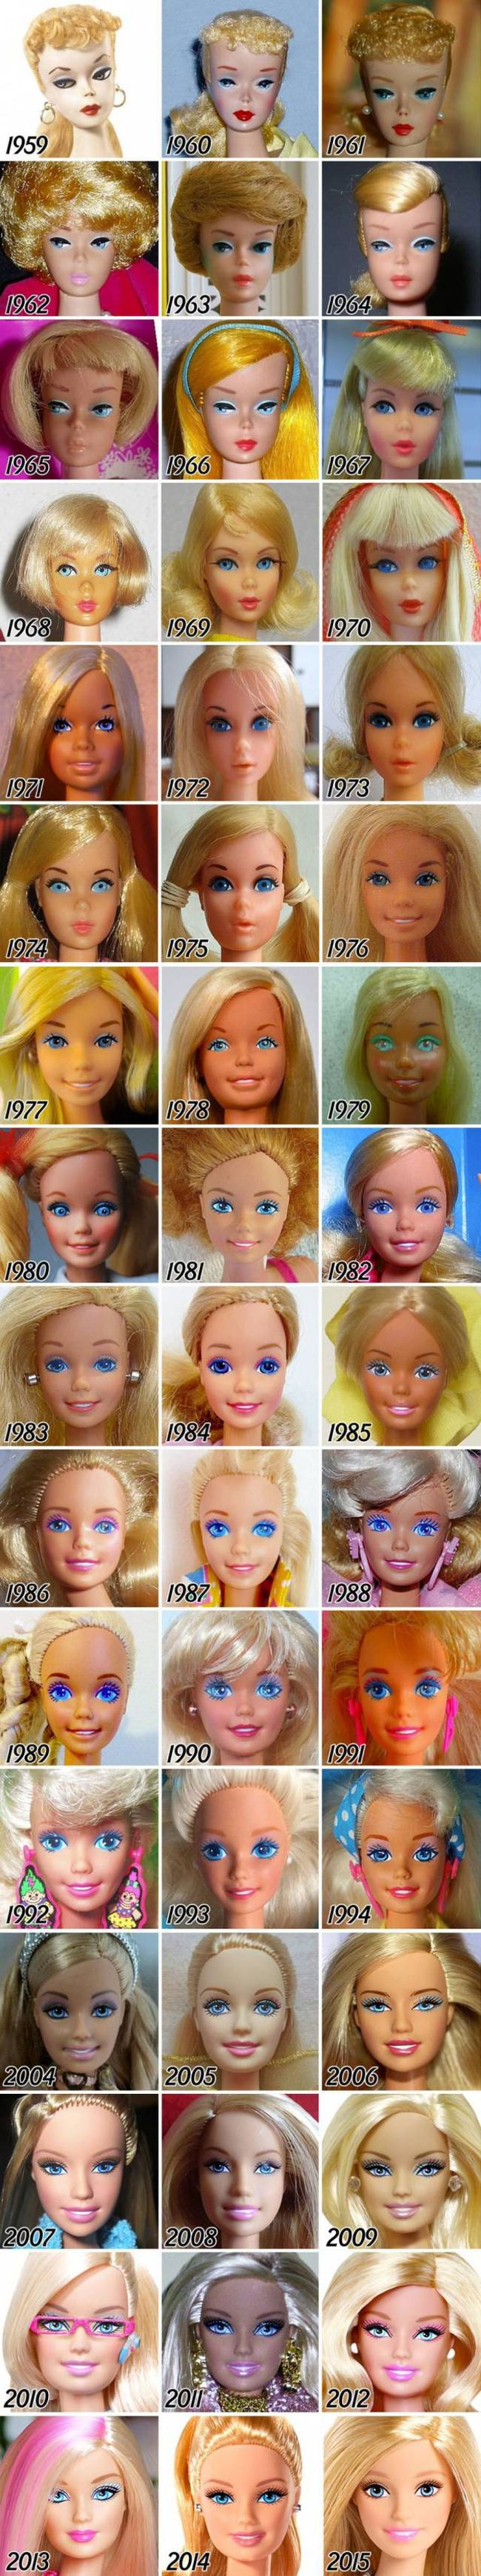 Looking Back On The Evolution Of Barbie (2 pics)